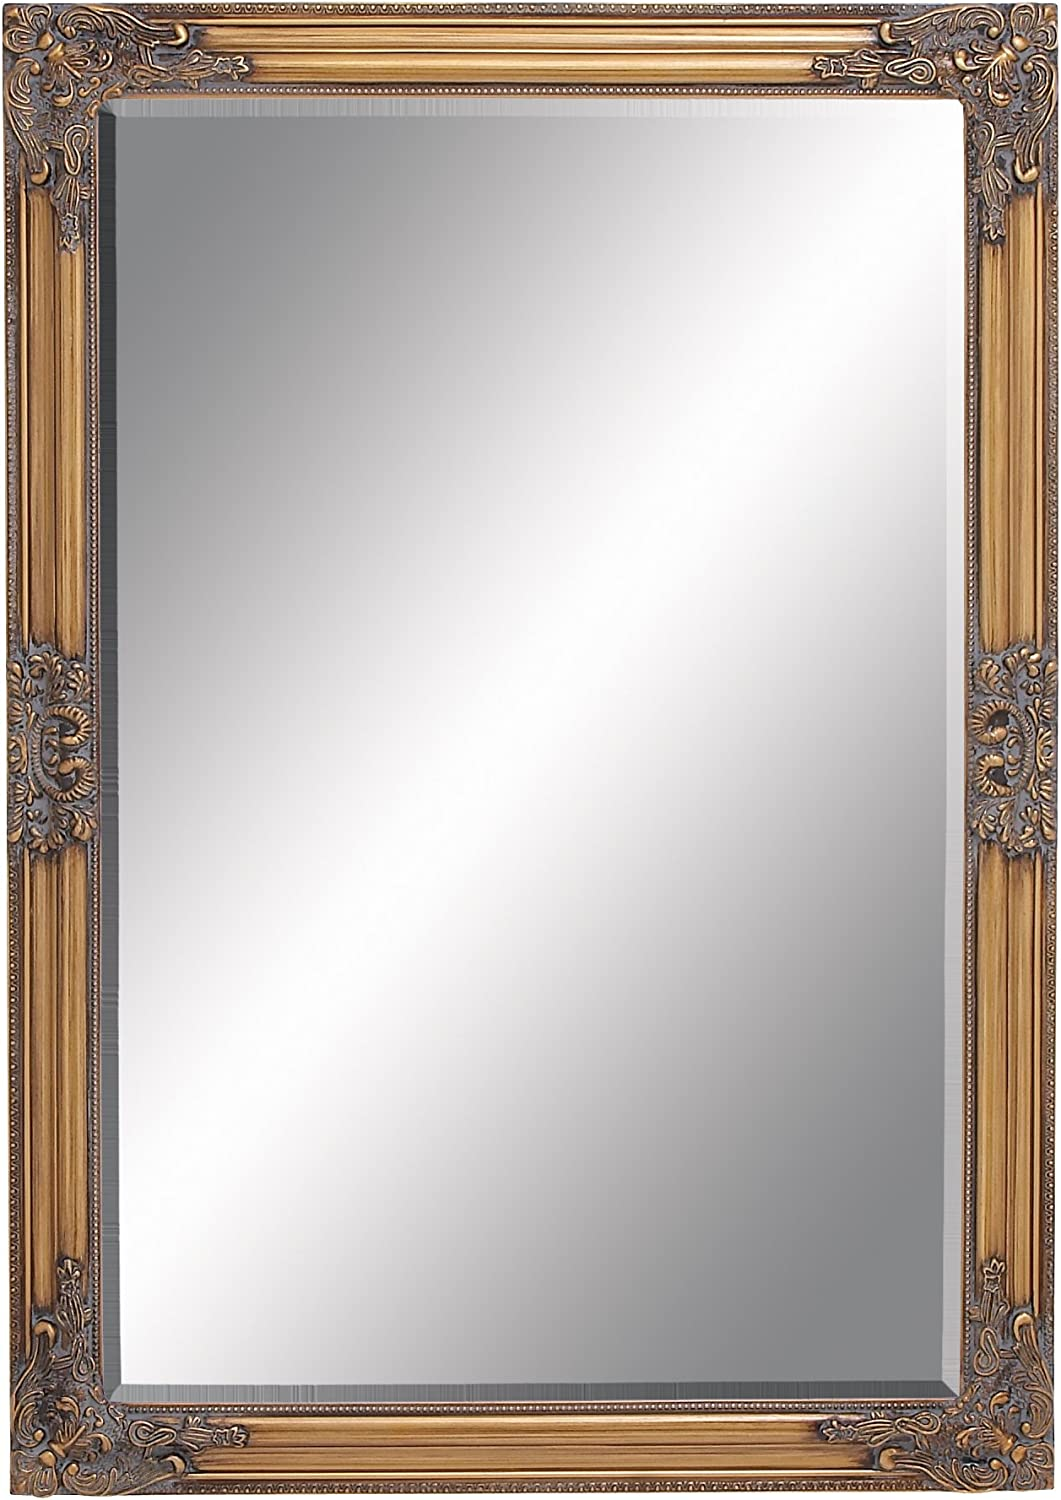 Deco 79 92759 Wood Beveled Mirror 28 by 40